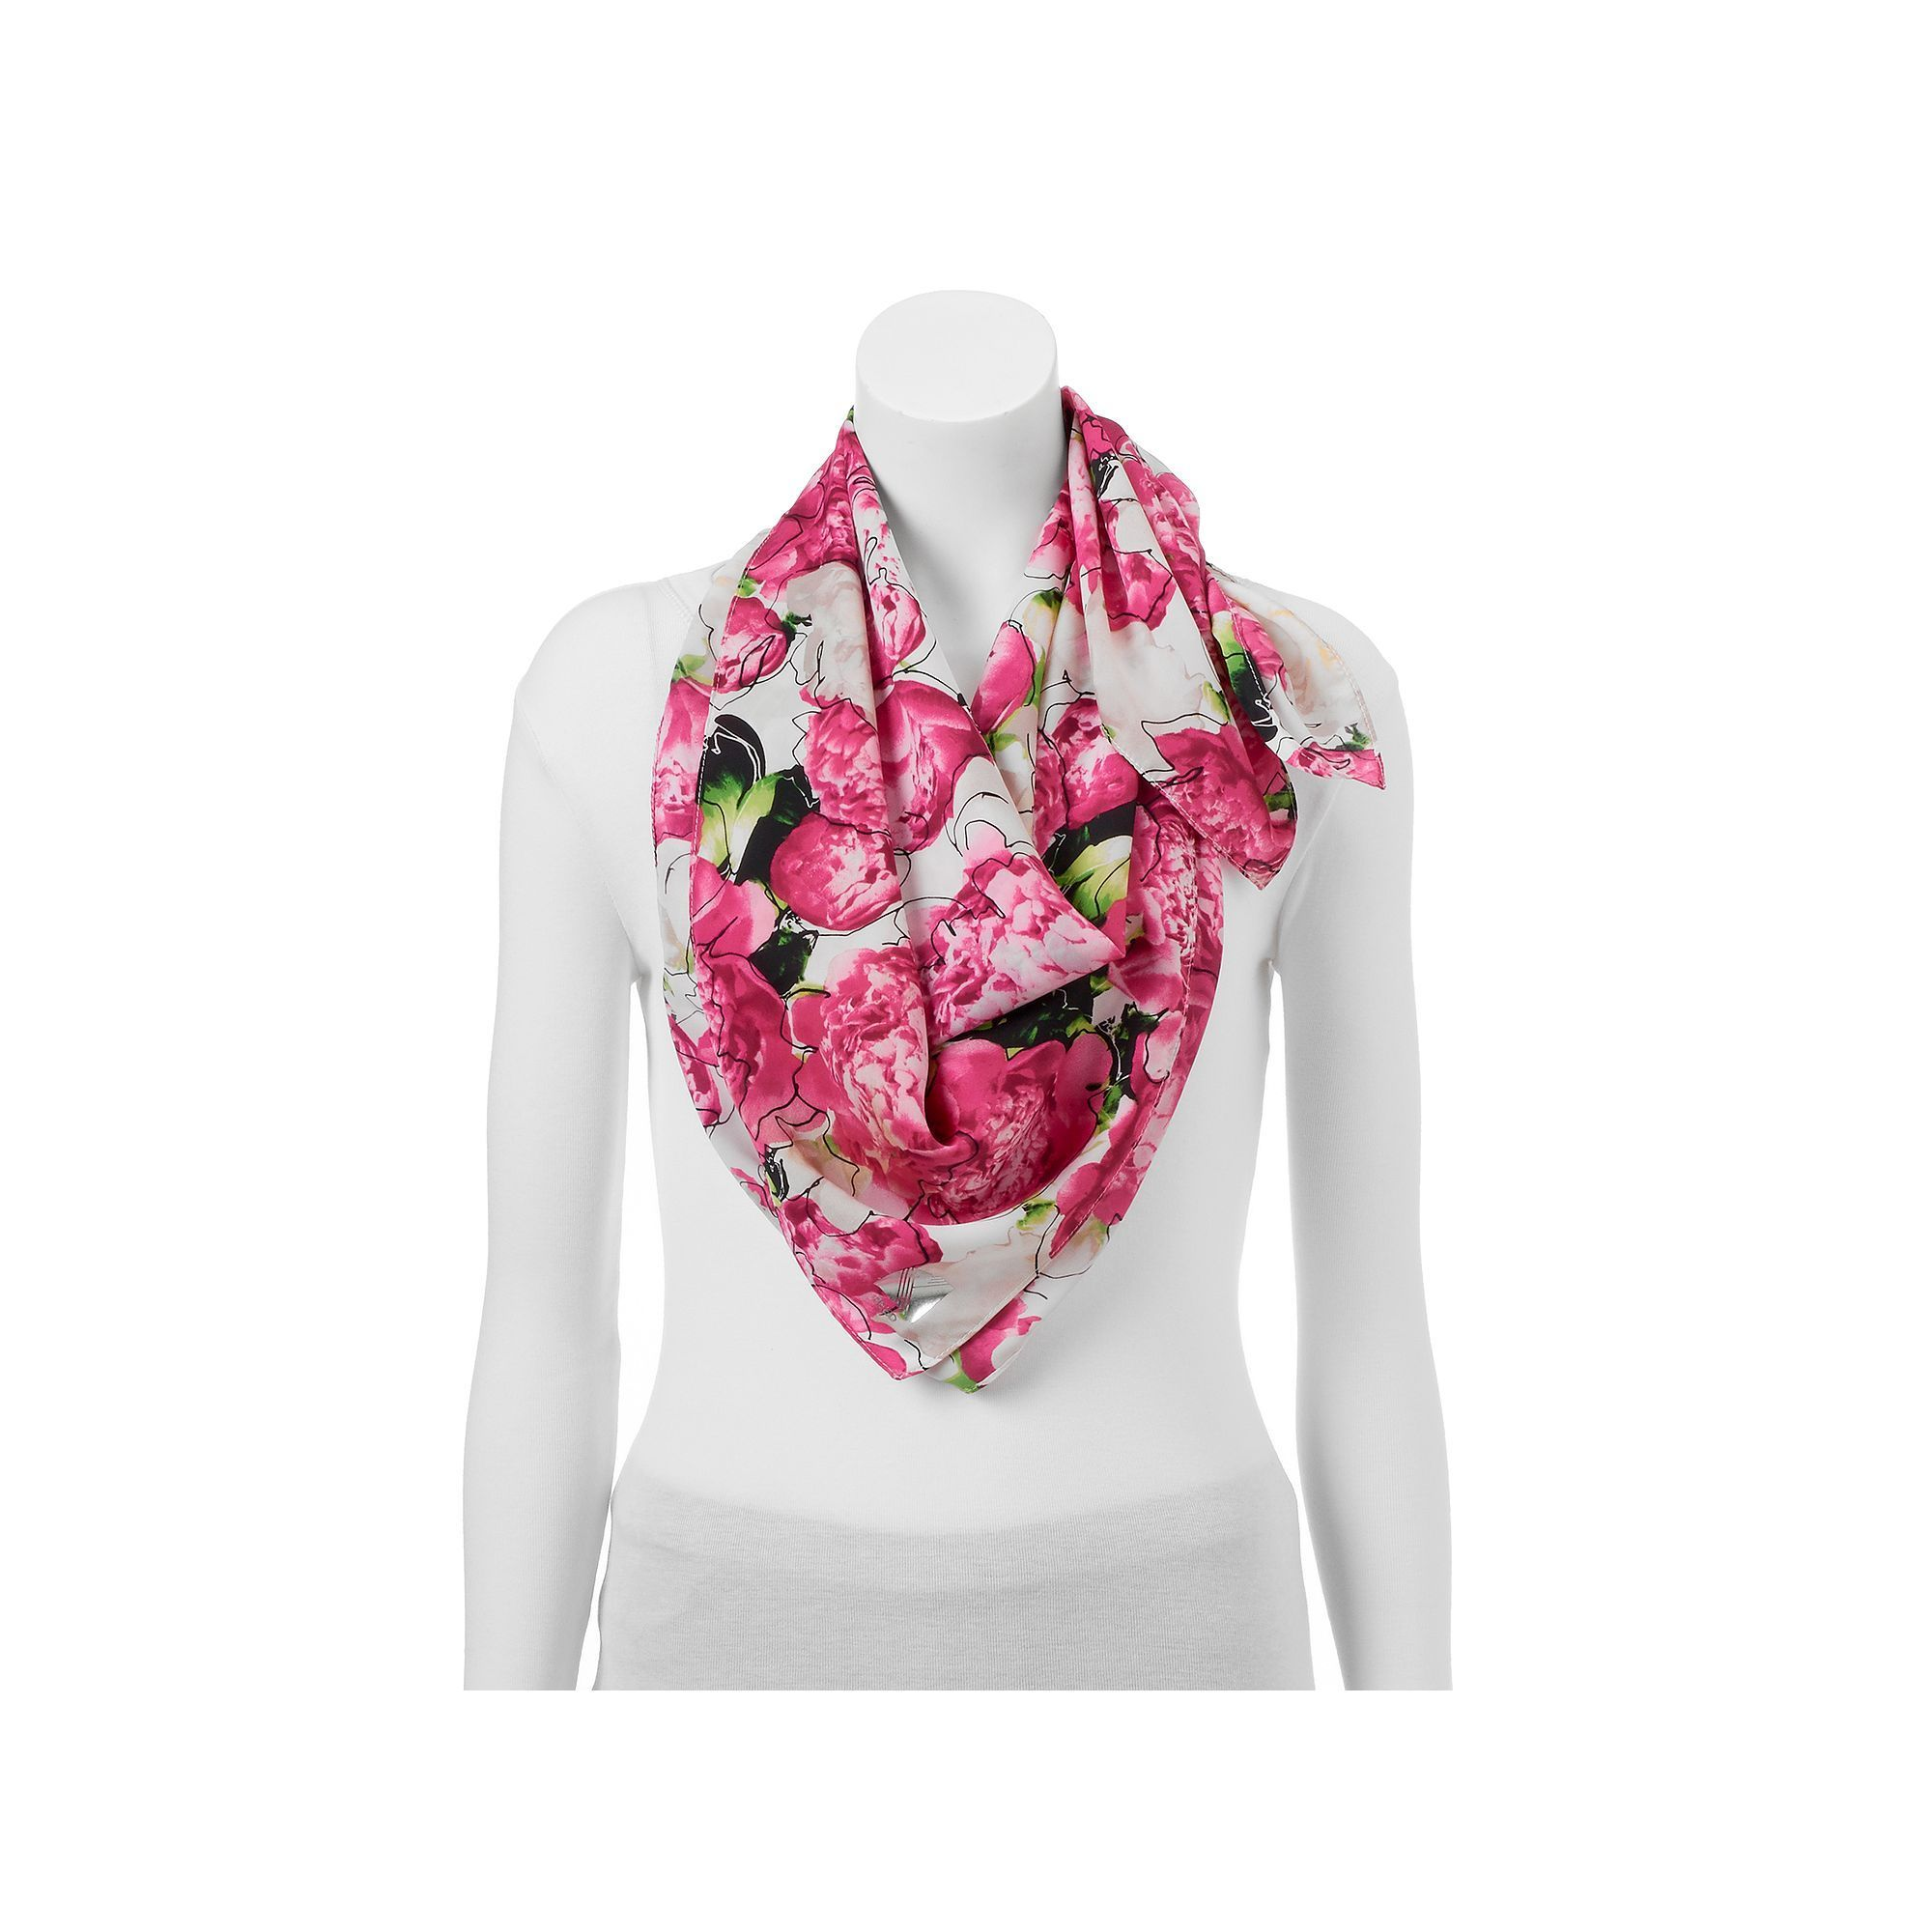 Silk Square Scarf - Reed 3 by VIDA VIDA